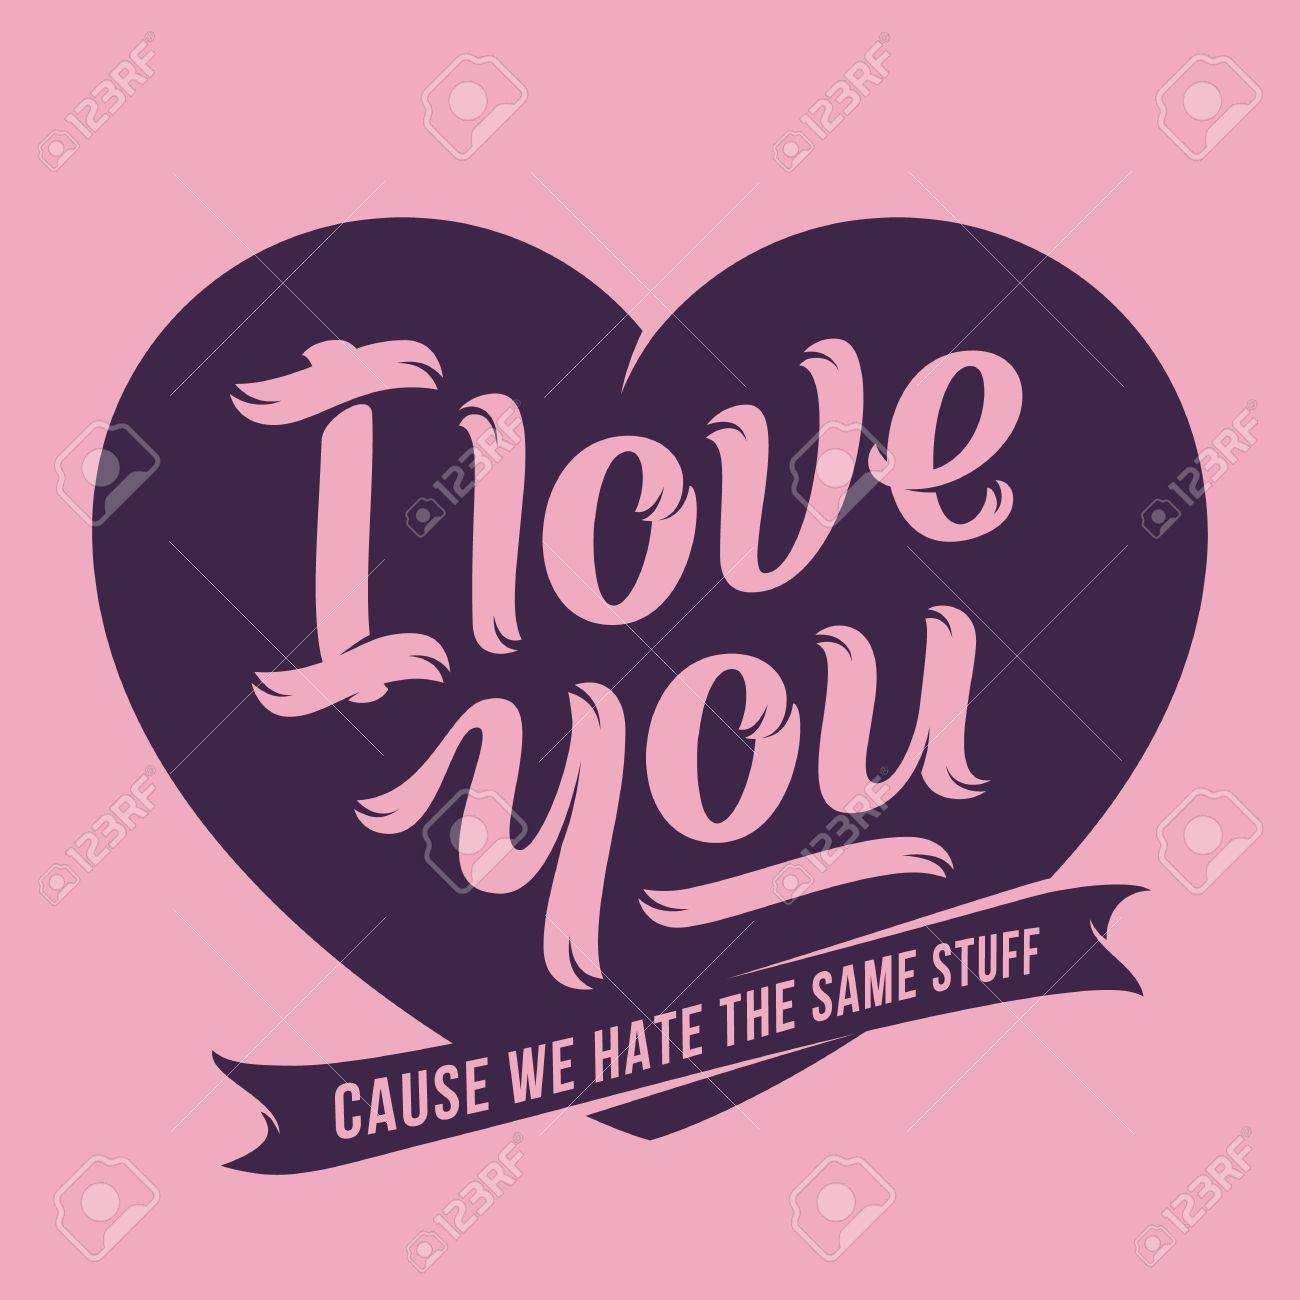 I Hate You Stock Photos Royalty Free I Hate You Images